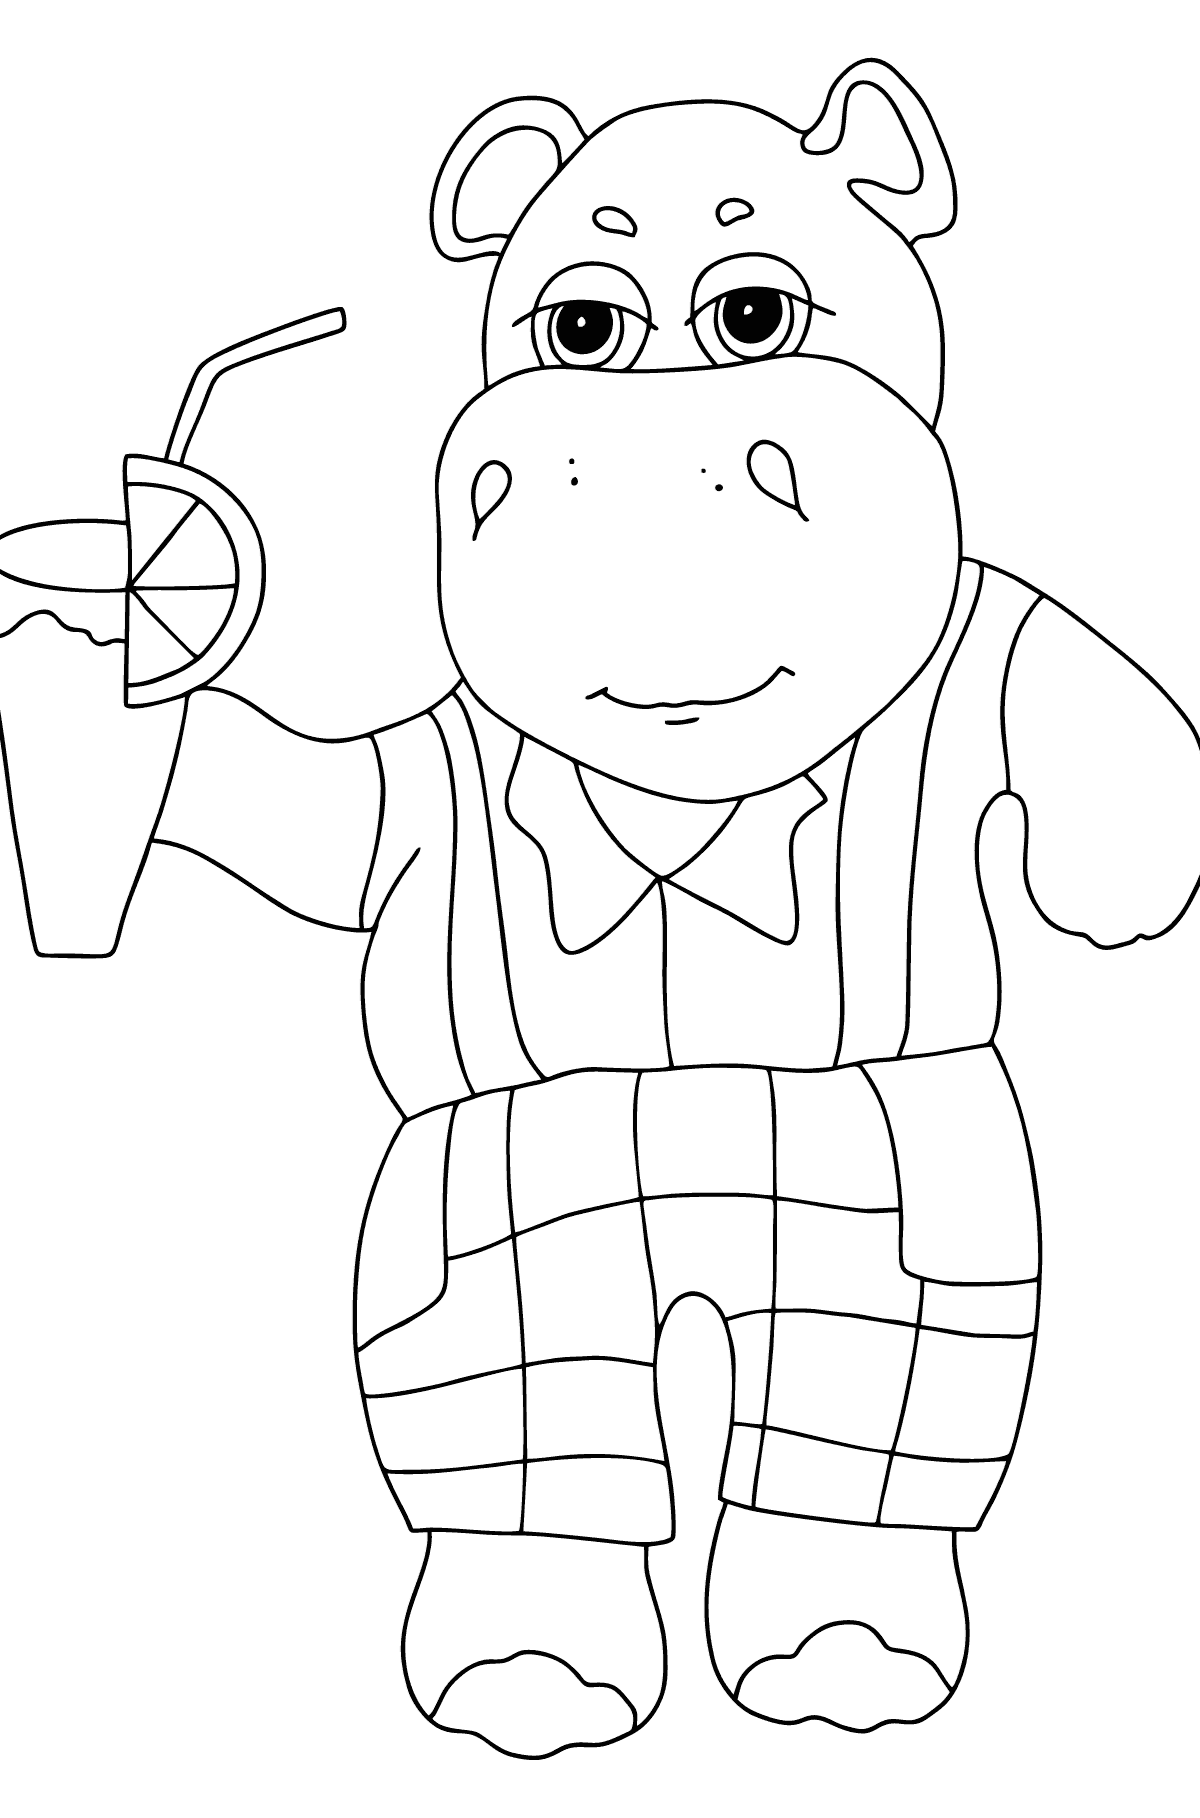 A Hippo is Drinking Orange Juice on a Beach for Kids